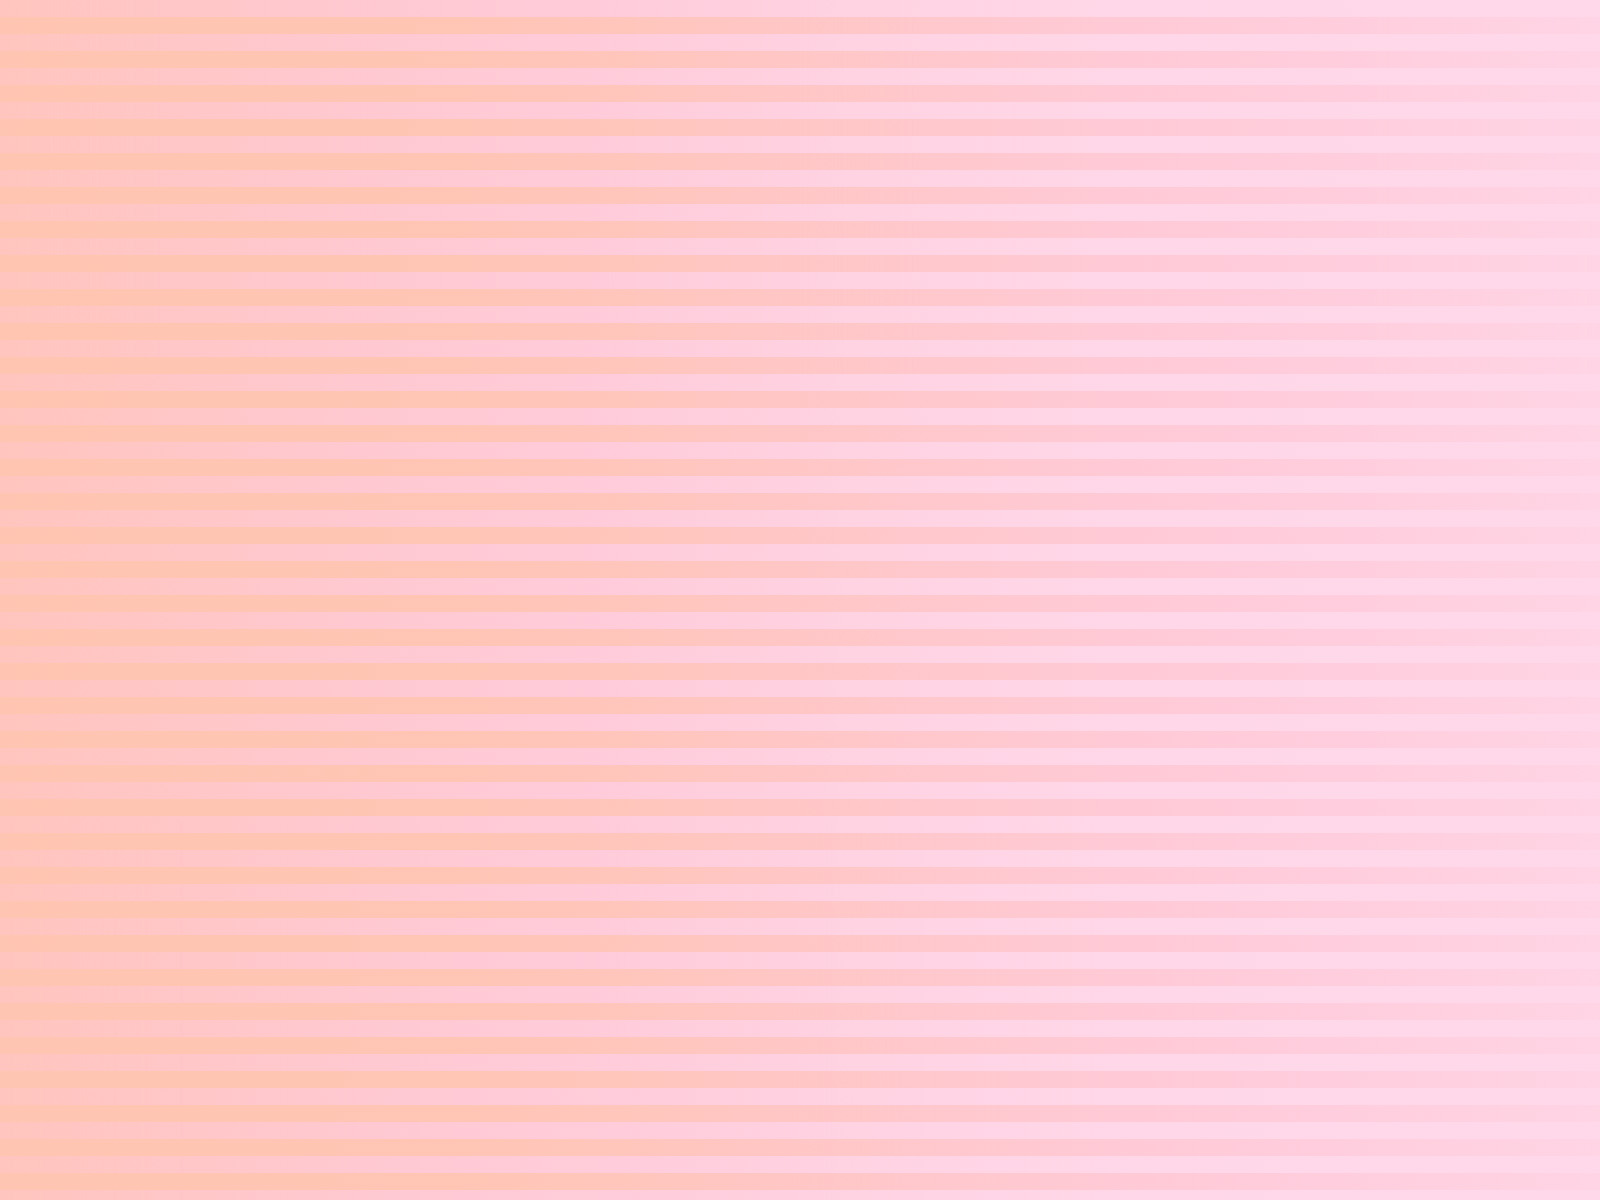 free download peach color background pink peach colour 1600x1200 for your desktop mobile tablet explore 46 peach colored wallpaper peach wallpaper peach wallpapers for house walls peach and green wallpaper free download peach color background